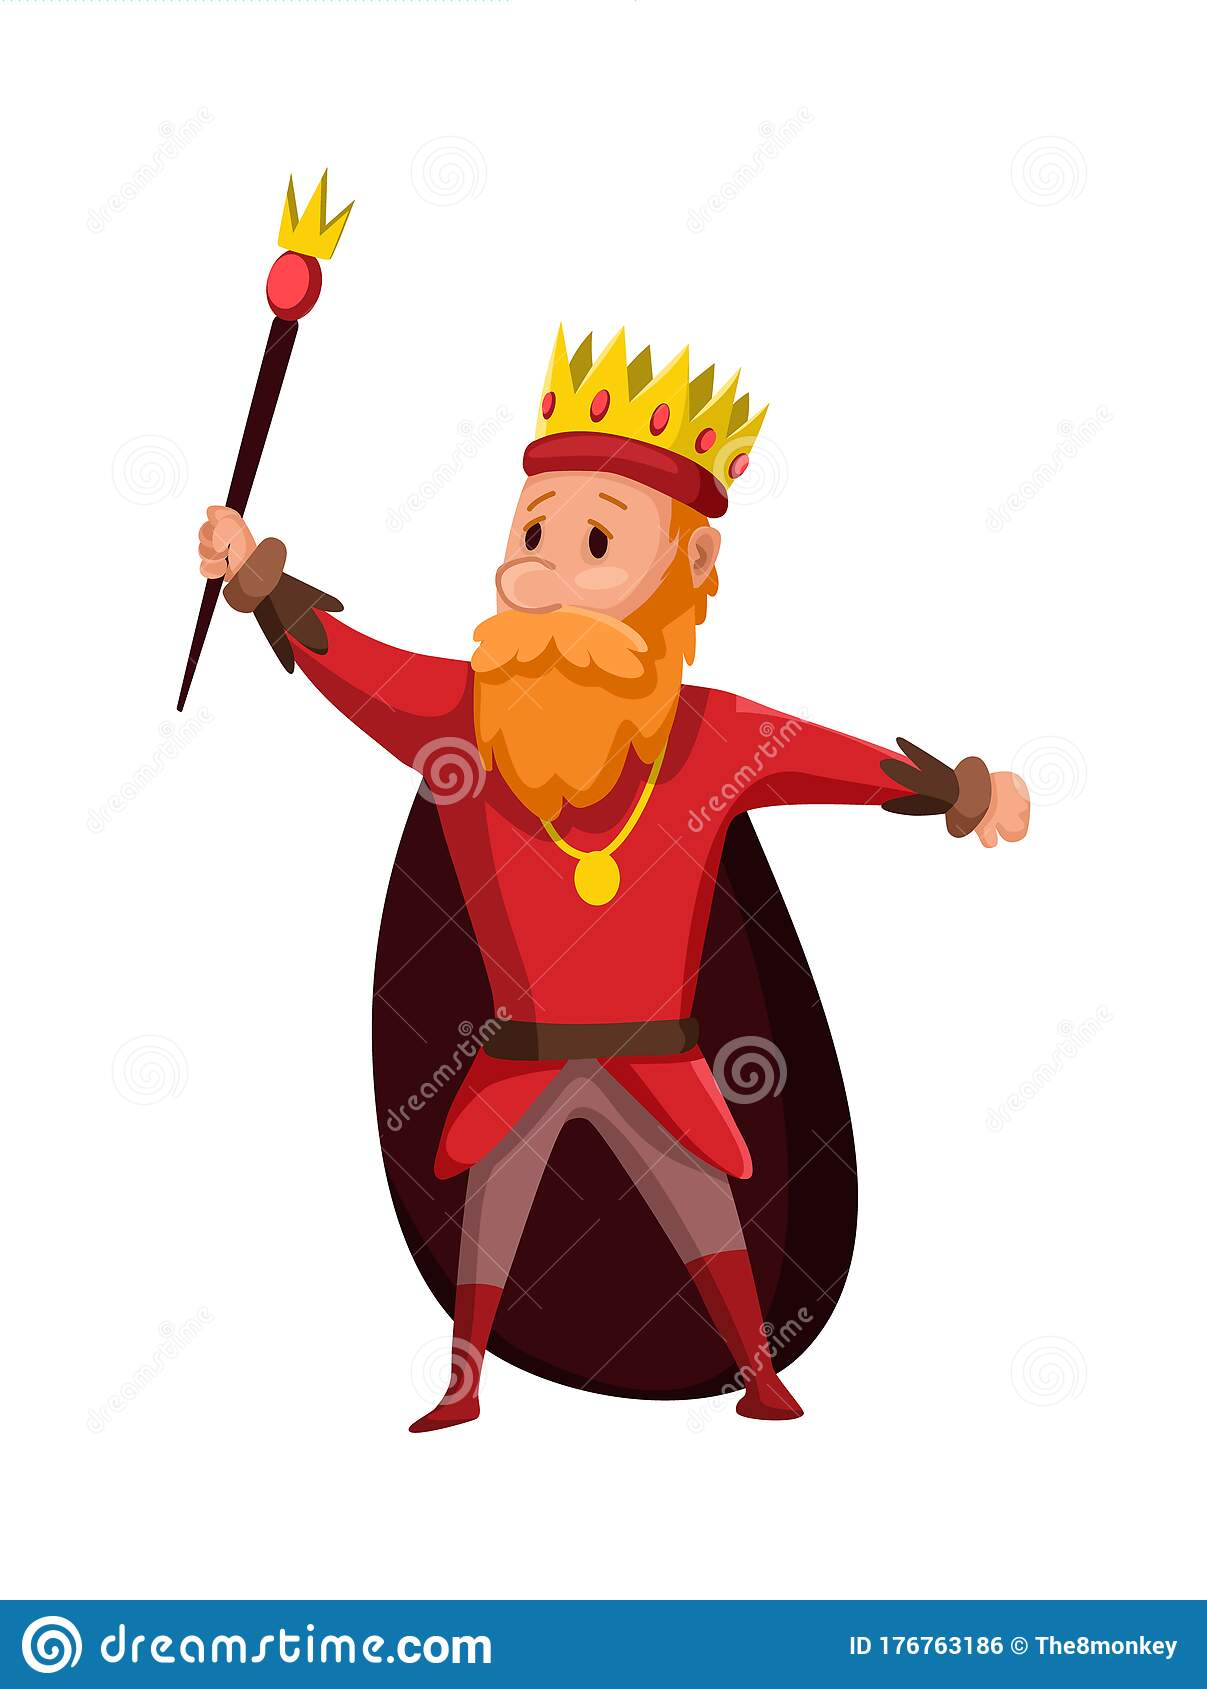 Cartoon King Crown Stock Illustrations 12 296 Cartoon King Crown Stock Illustrations Vectors Clipart Dreamstime The crown's jewels are from magwood, and are the source the object's magic. dreamstime com